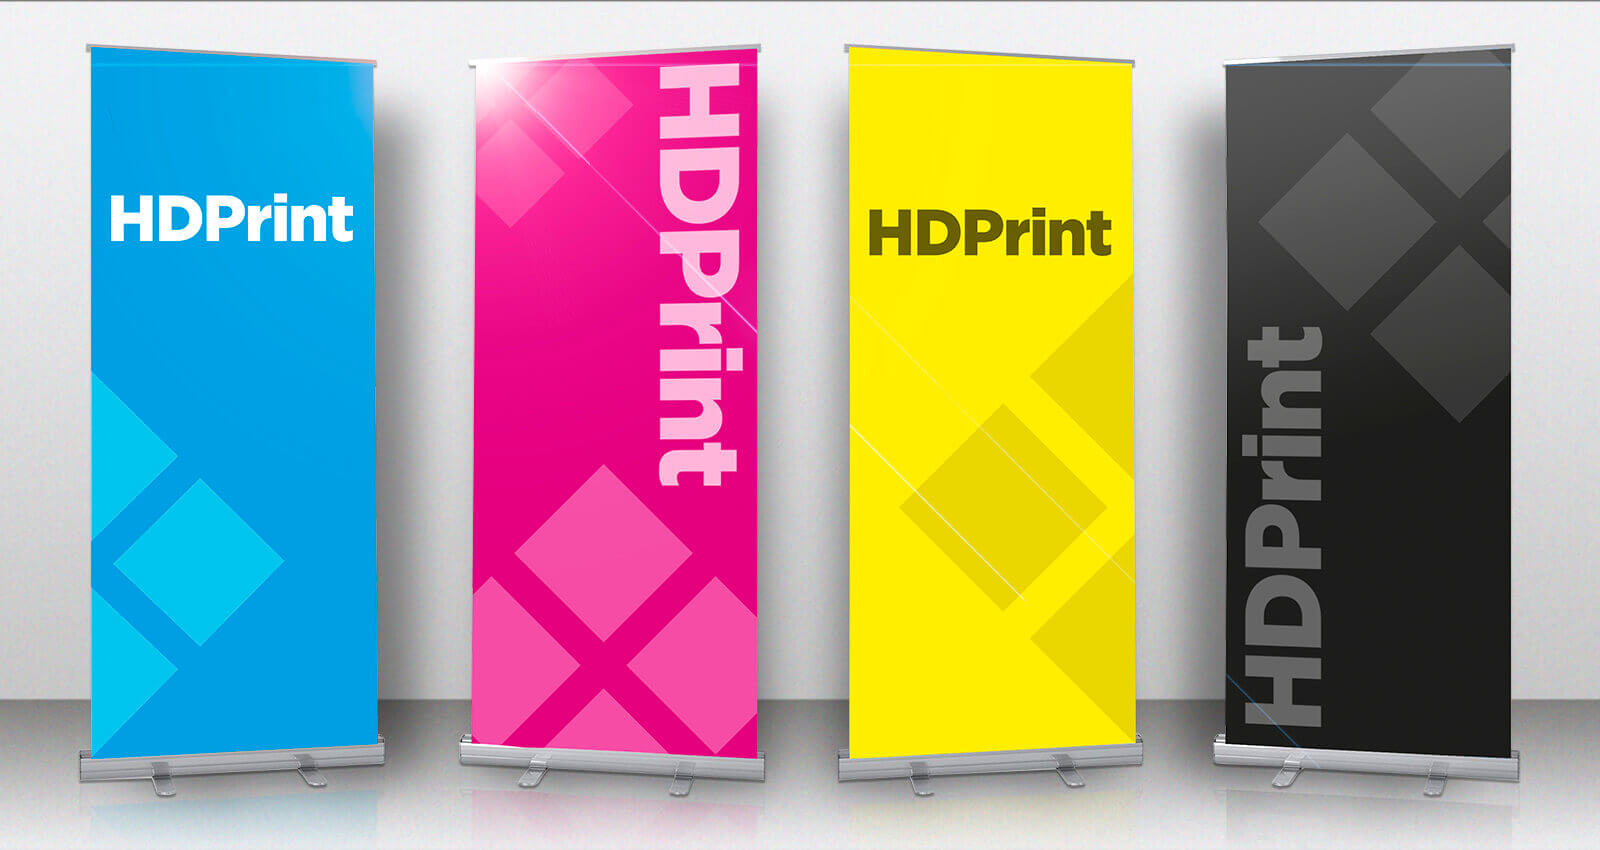 Exhibition and event roller banners